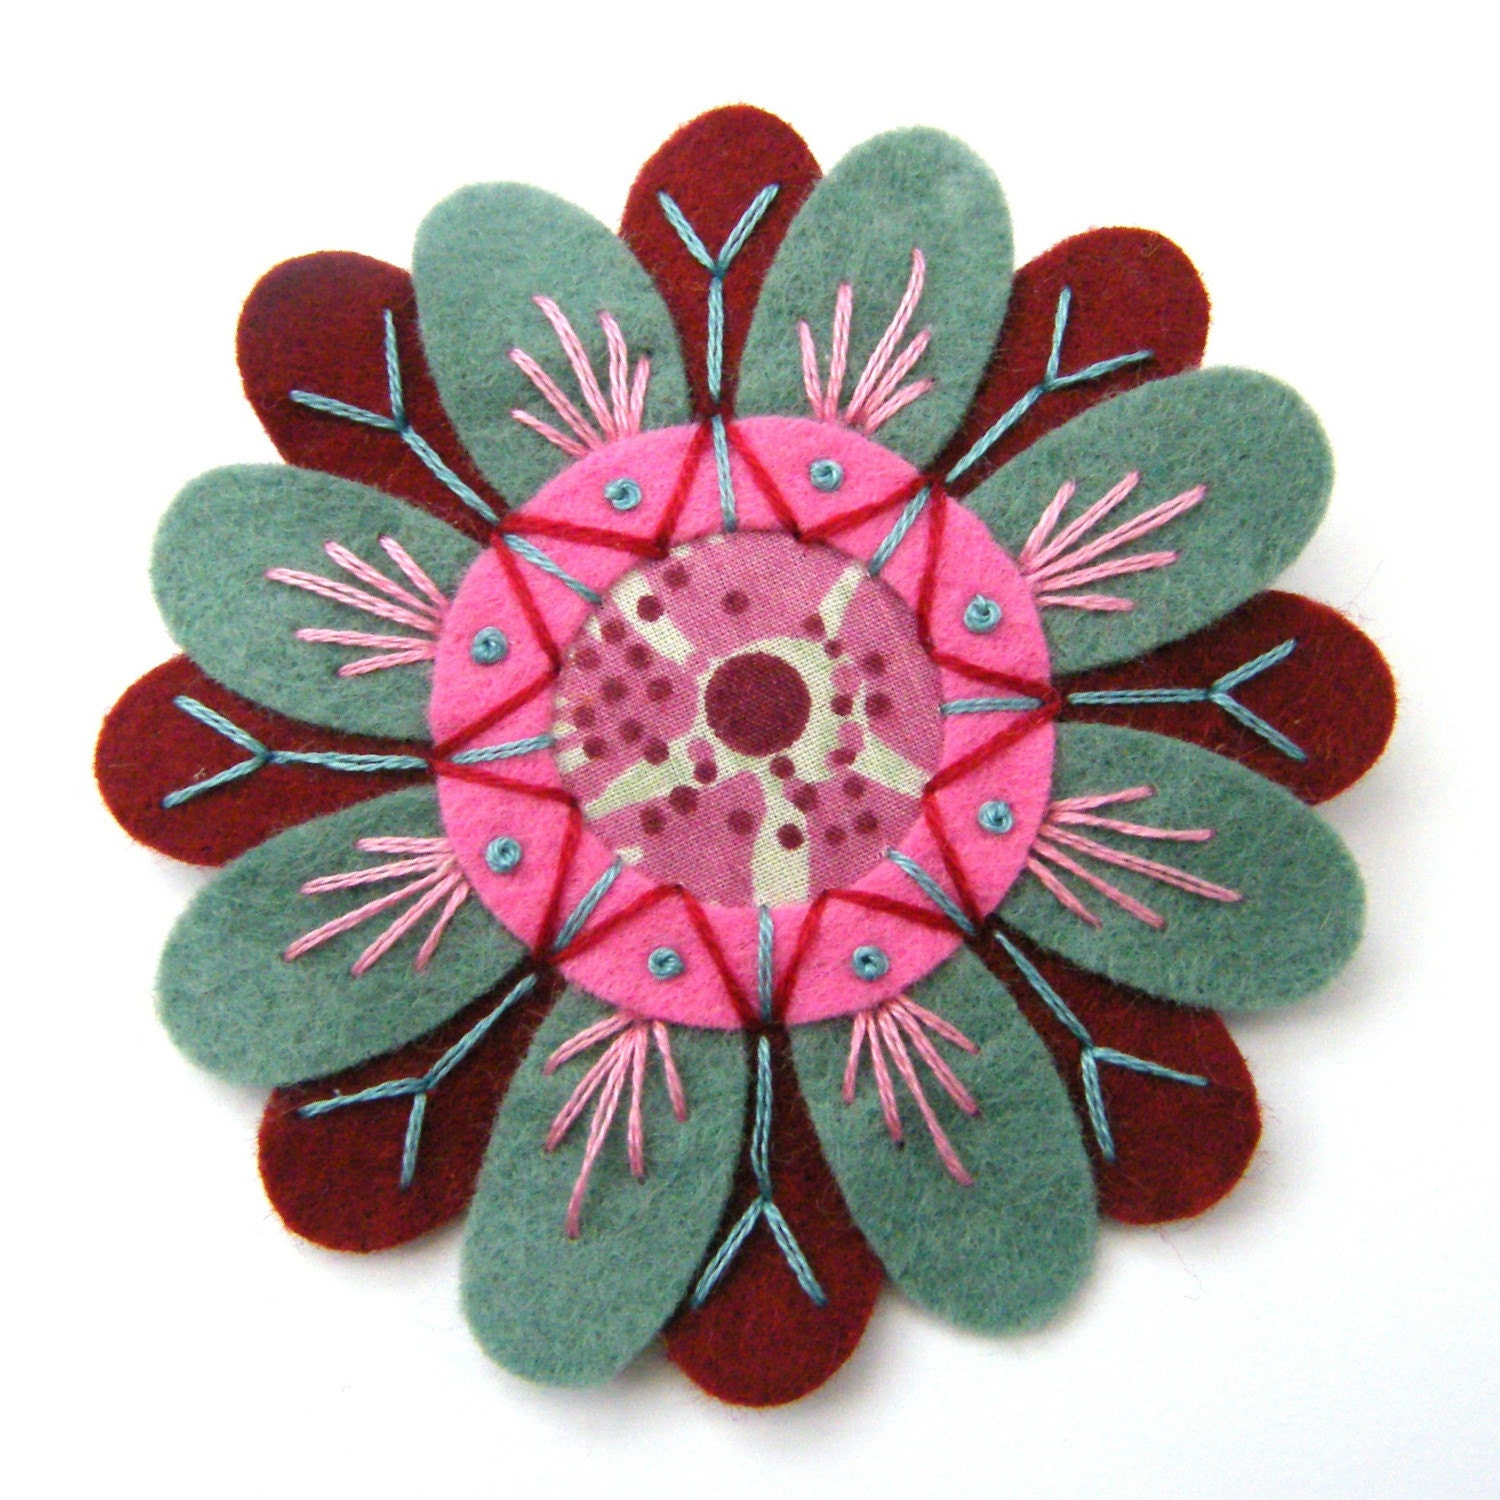 FELT AND FABRIC FLOWER BROOCH WITH FREEFORM EMBROIDERY